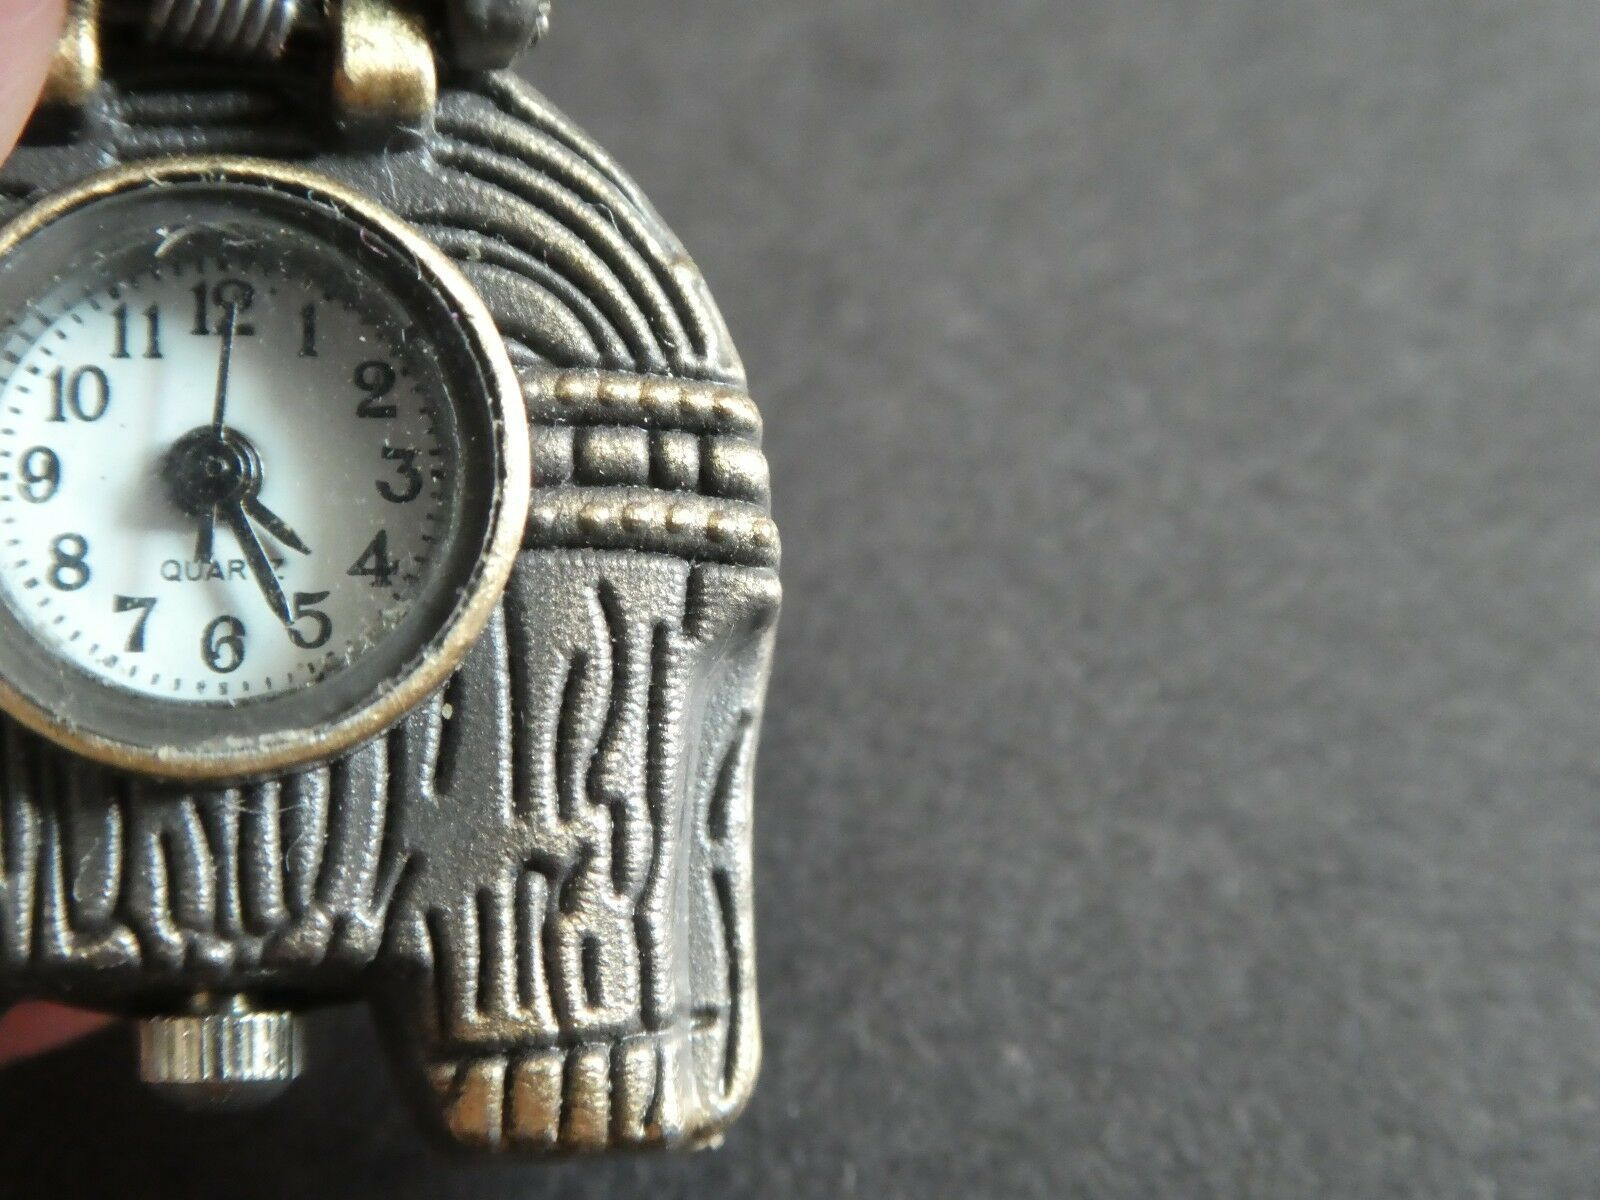 Empowering Vintage Elephant Necklace Watch Bronze Tone Quartz Need Battery image 4